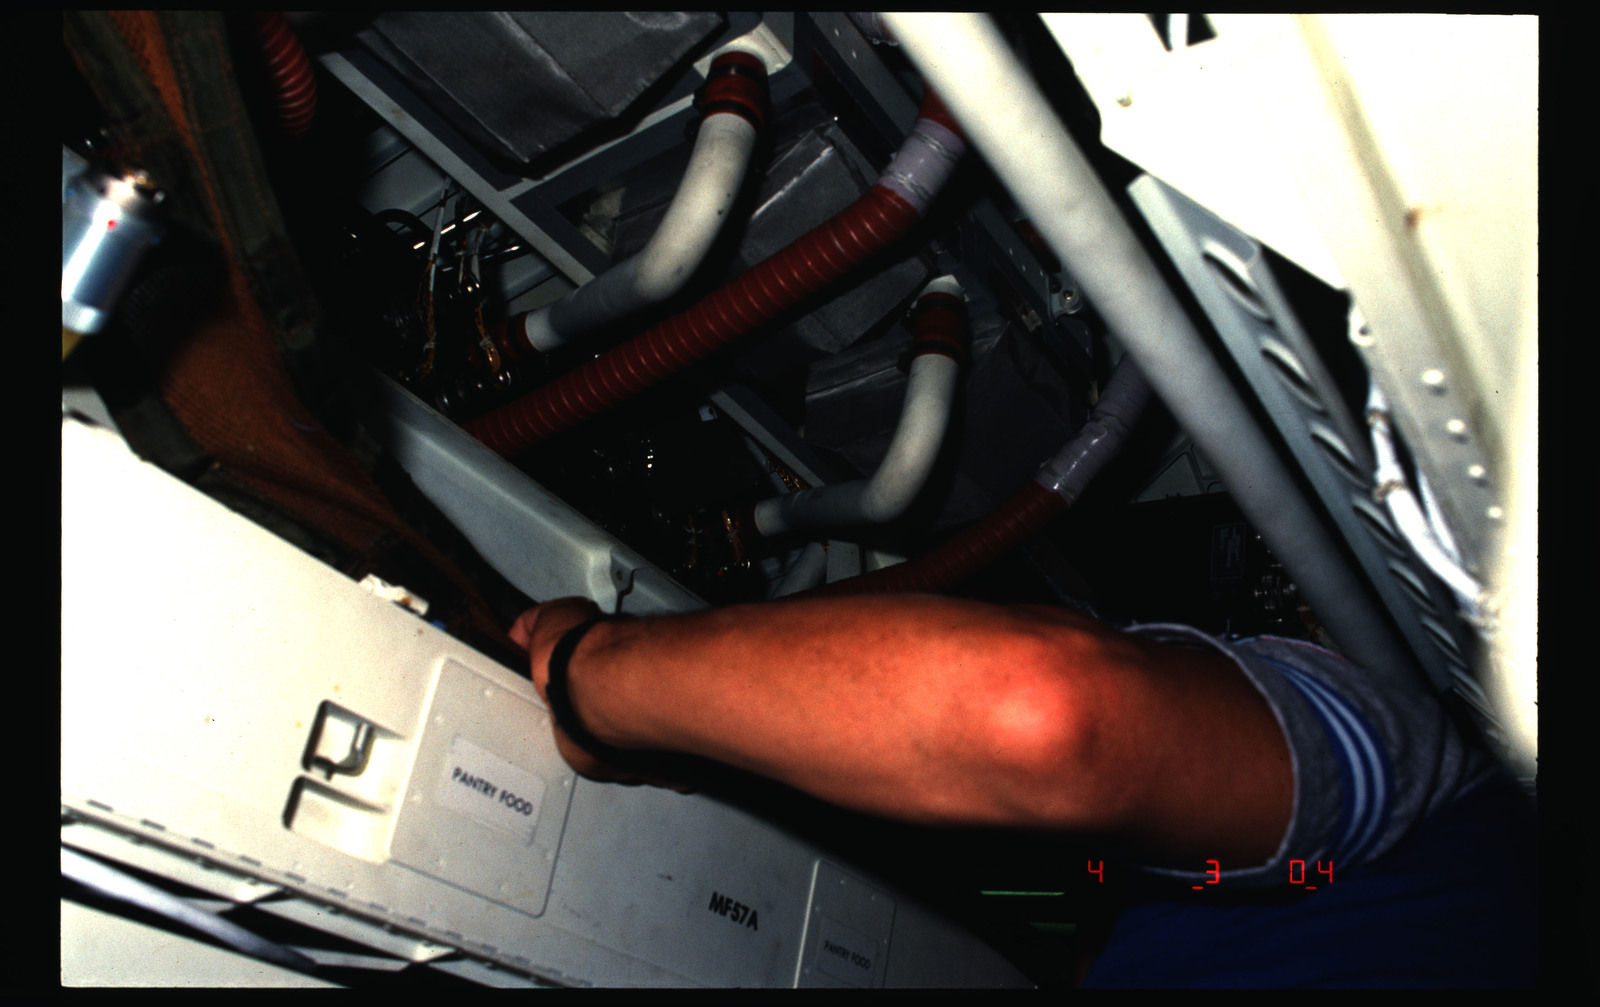 51B-13-009 - STS-51B - Cleaning